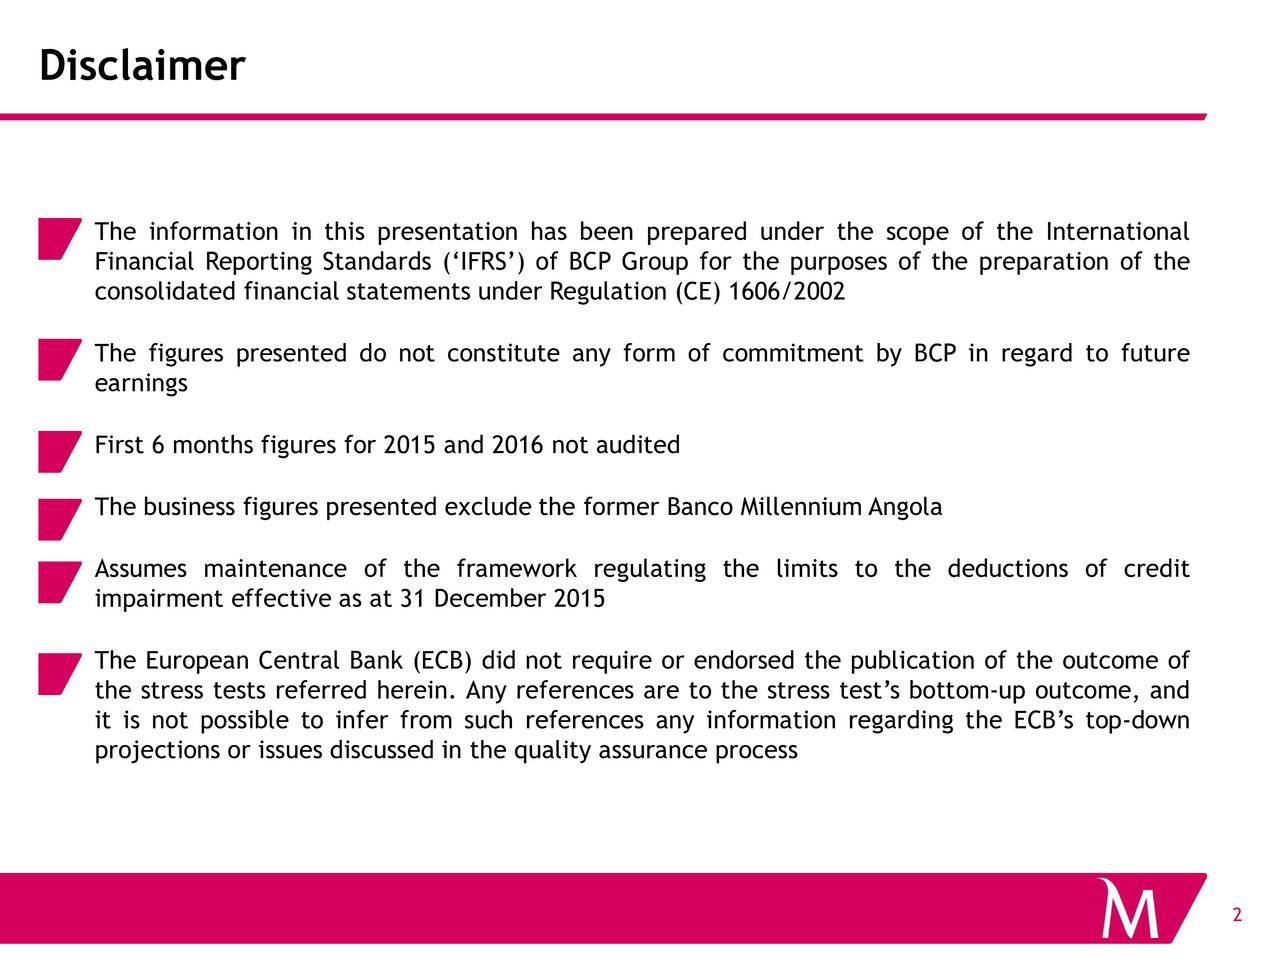 The information in this presentation has been prepared under the scope of the International Financial Reporting Standards (IFRS) of BCP Group for the purposes of the preparation of the consolidated financial statements under Regulation (CE) 1606/2002 The figures presented do not constitute any form of commitment by BCP in regard to future earnings First 6 months figures for 2015 and 2016 not audited The business figures presented exclude the former Banco Millennium Angola Assumes maintenance of the framework regulating the limits to the deductions of credit impairment effective as at 31 December 2015 The European Central Bank (ECB) did not require or endorsed the publication of the outcome of the stress tests referred herein. Any references are to the stress tests bottom-up outcome, and it is not possible to infer from such references any information regarding the ECBs top-down projections or issues discussed in the quality assurance process 2